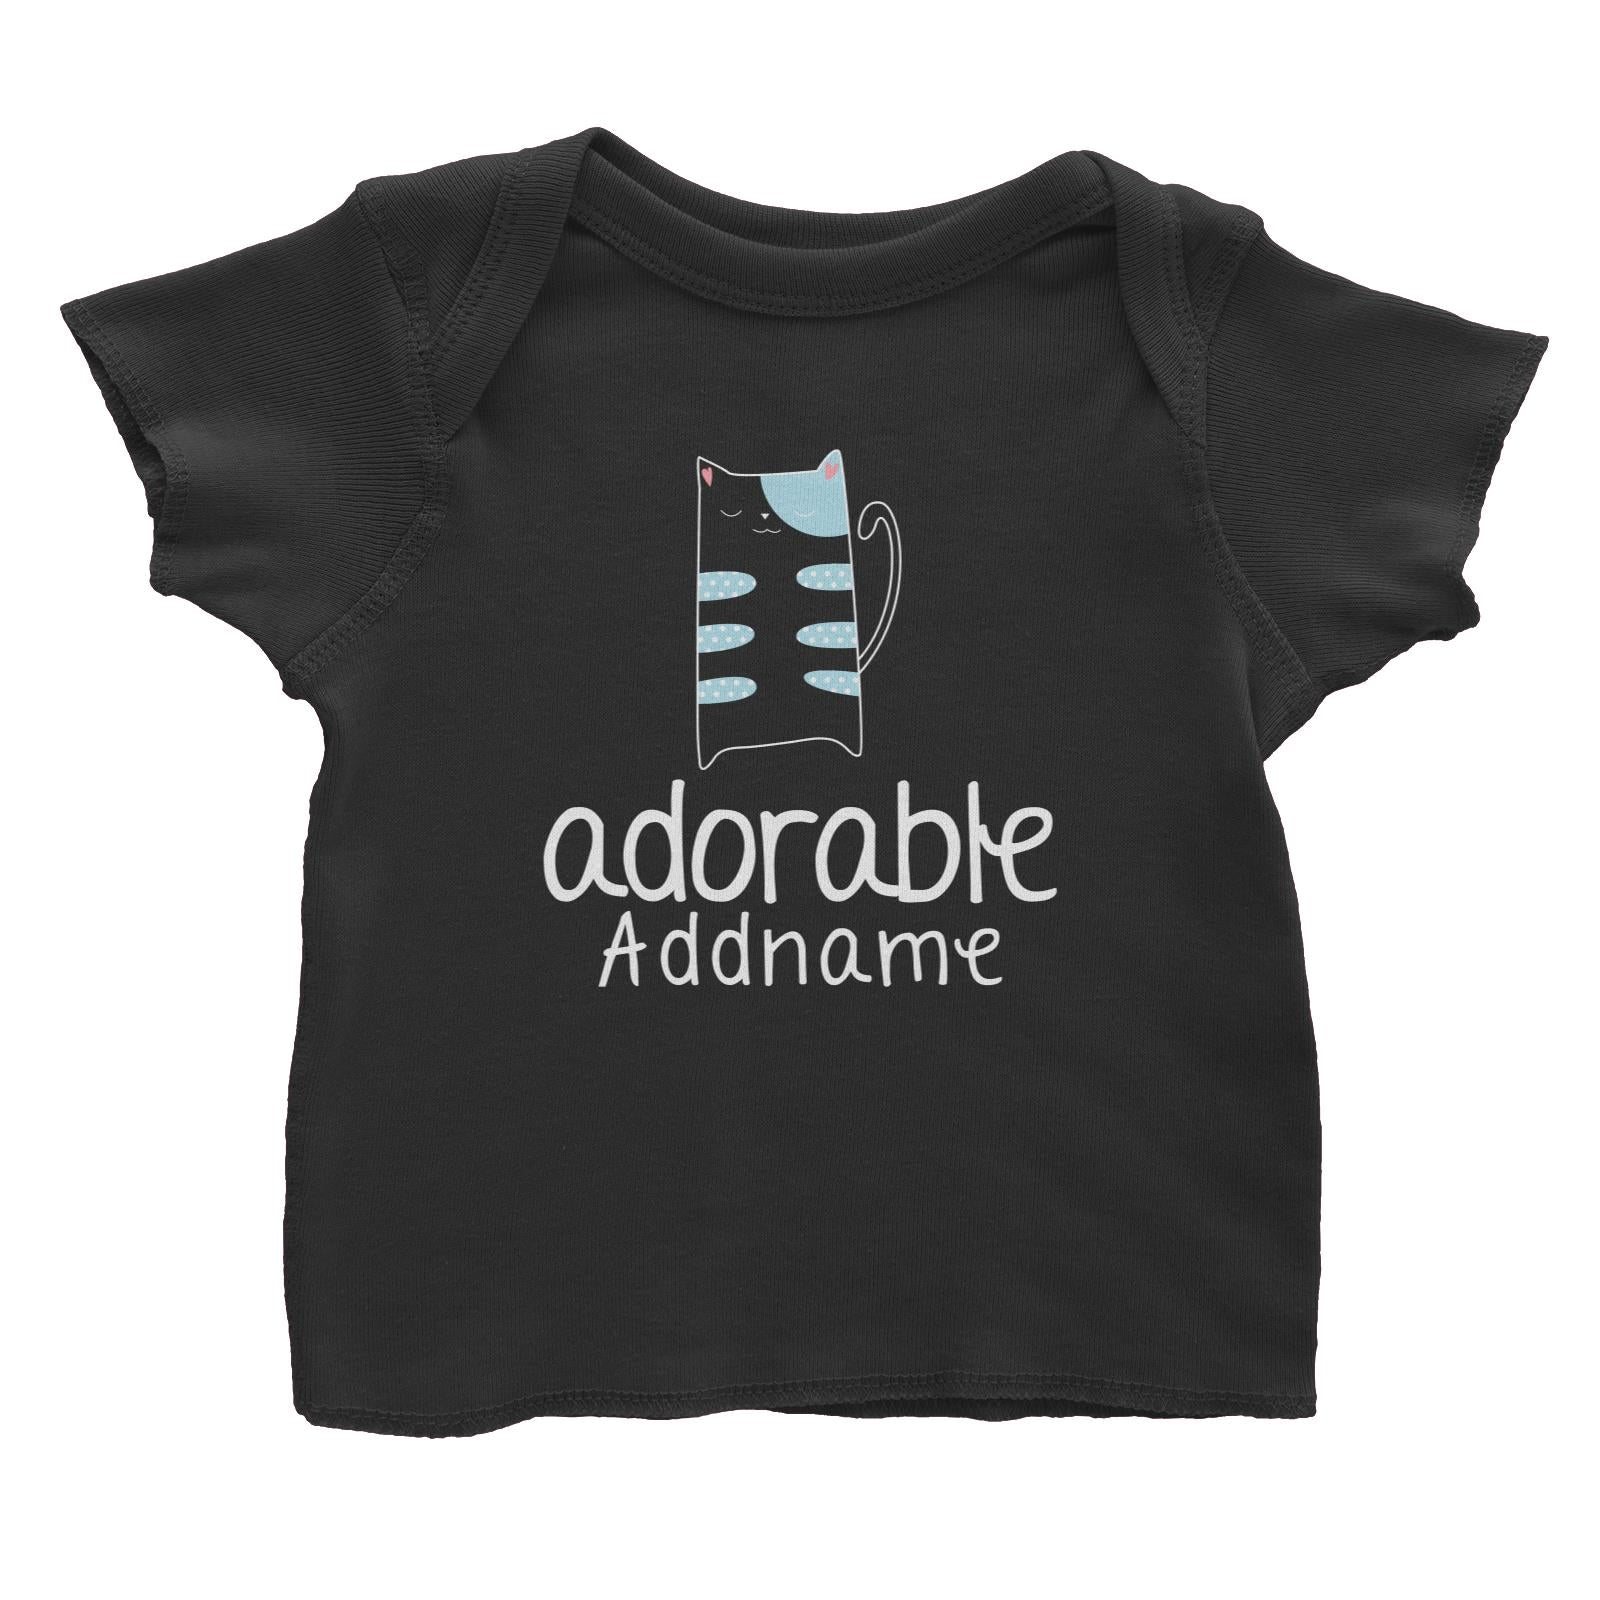 Cute Animals and Friends Series 2 Cat Adorable Addname Baby T-Shirt